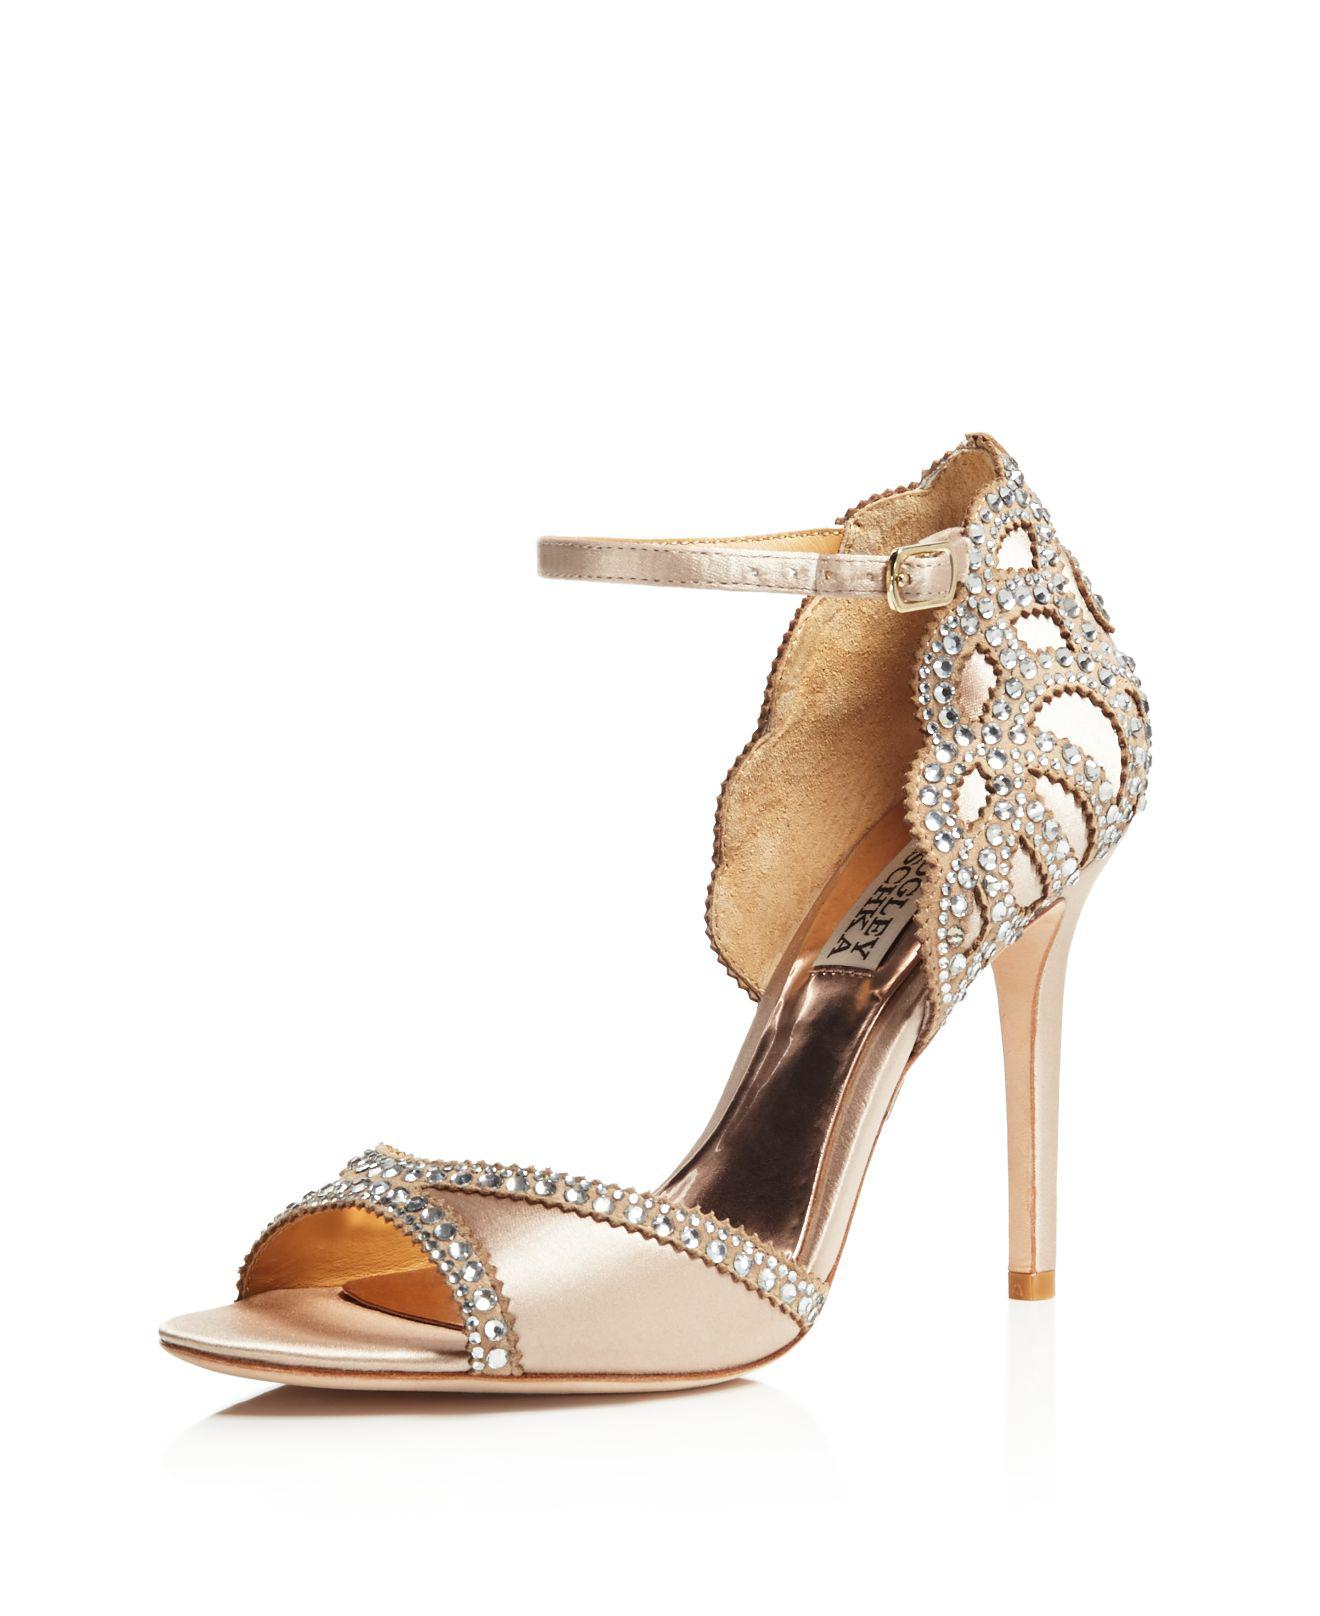 Badgley Mischka Roxy Vintage High-Heel Sandals uNEfEXVzig